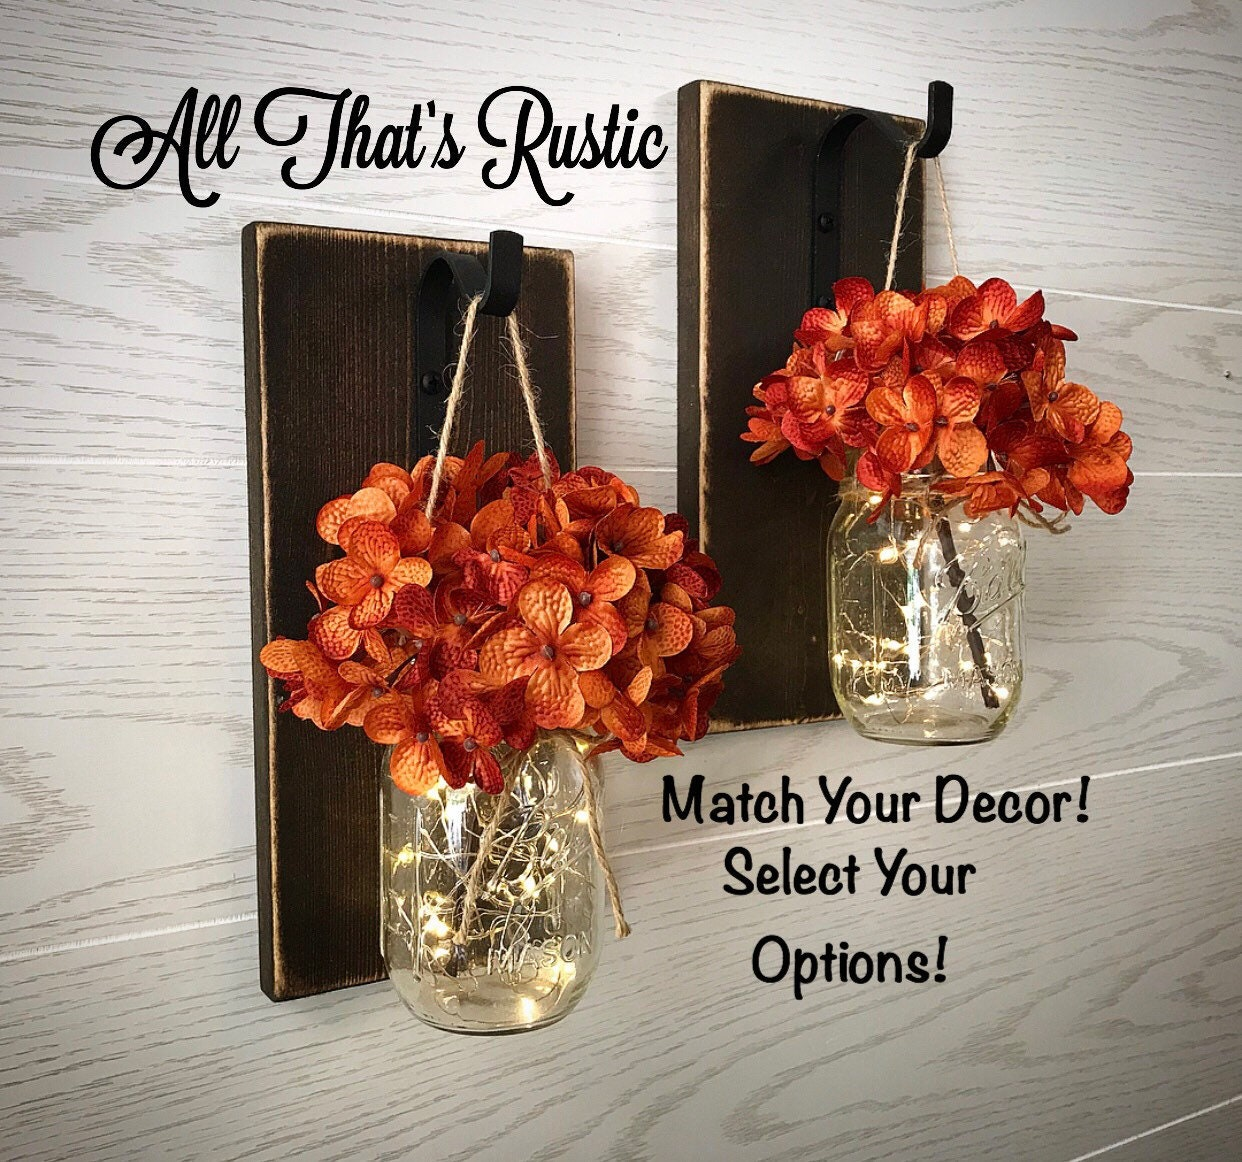 Rustic Fall Decor Fall Wall Decor Fall Decor Fall Home   Etsy